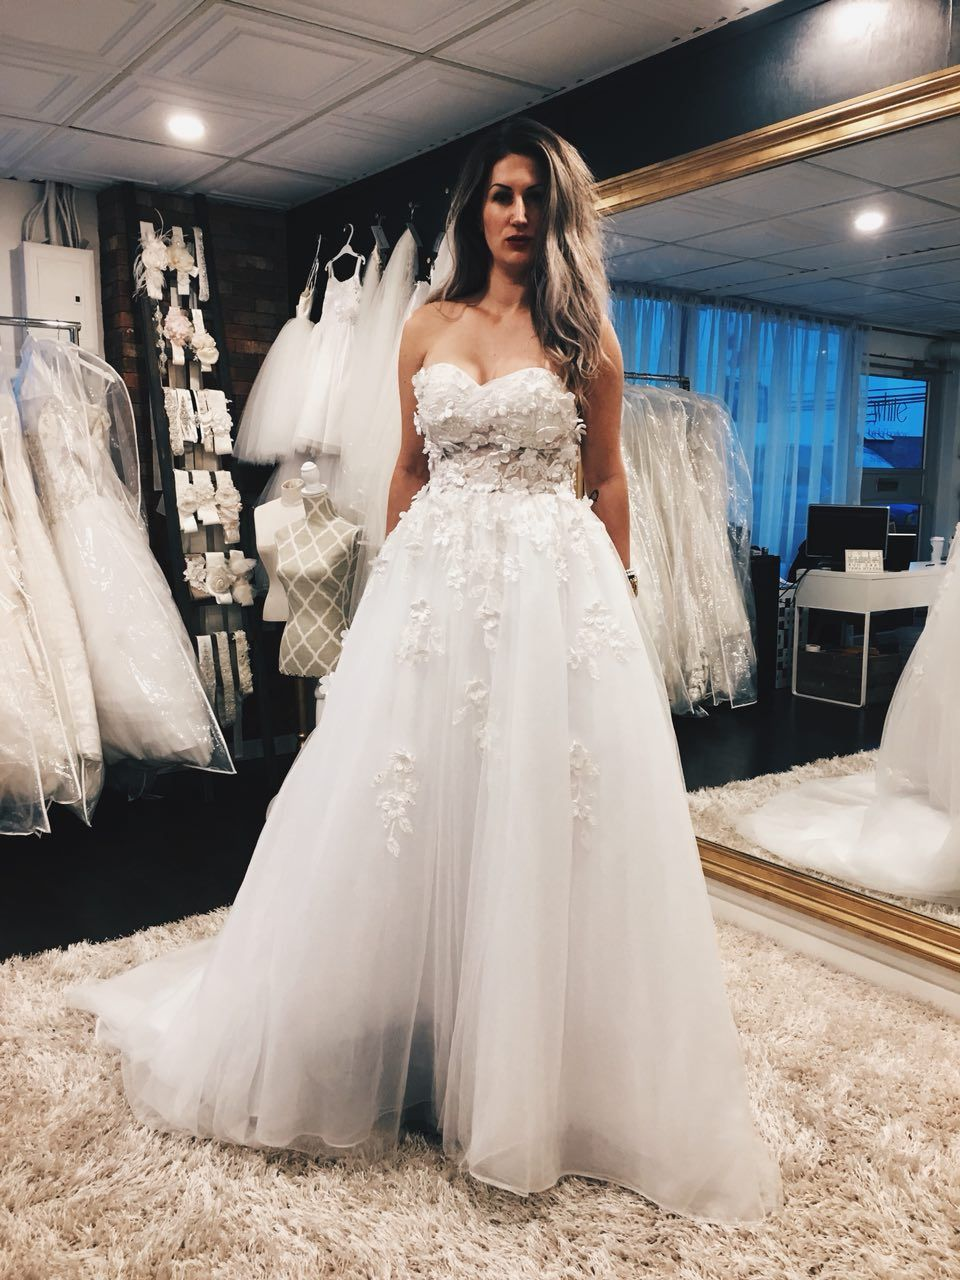 Beautiful bridal dress with little flowers are perfect for your wedding day!